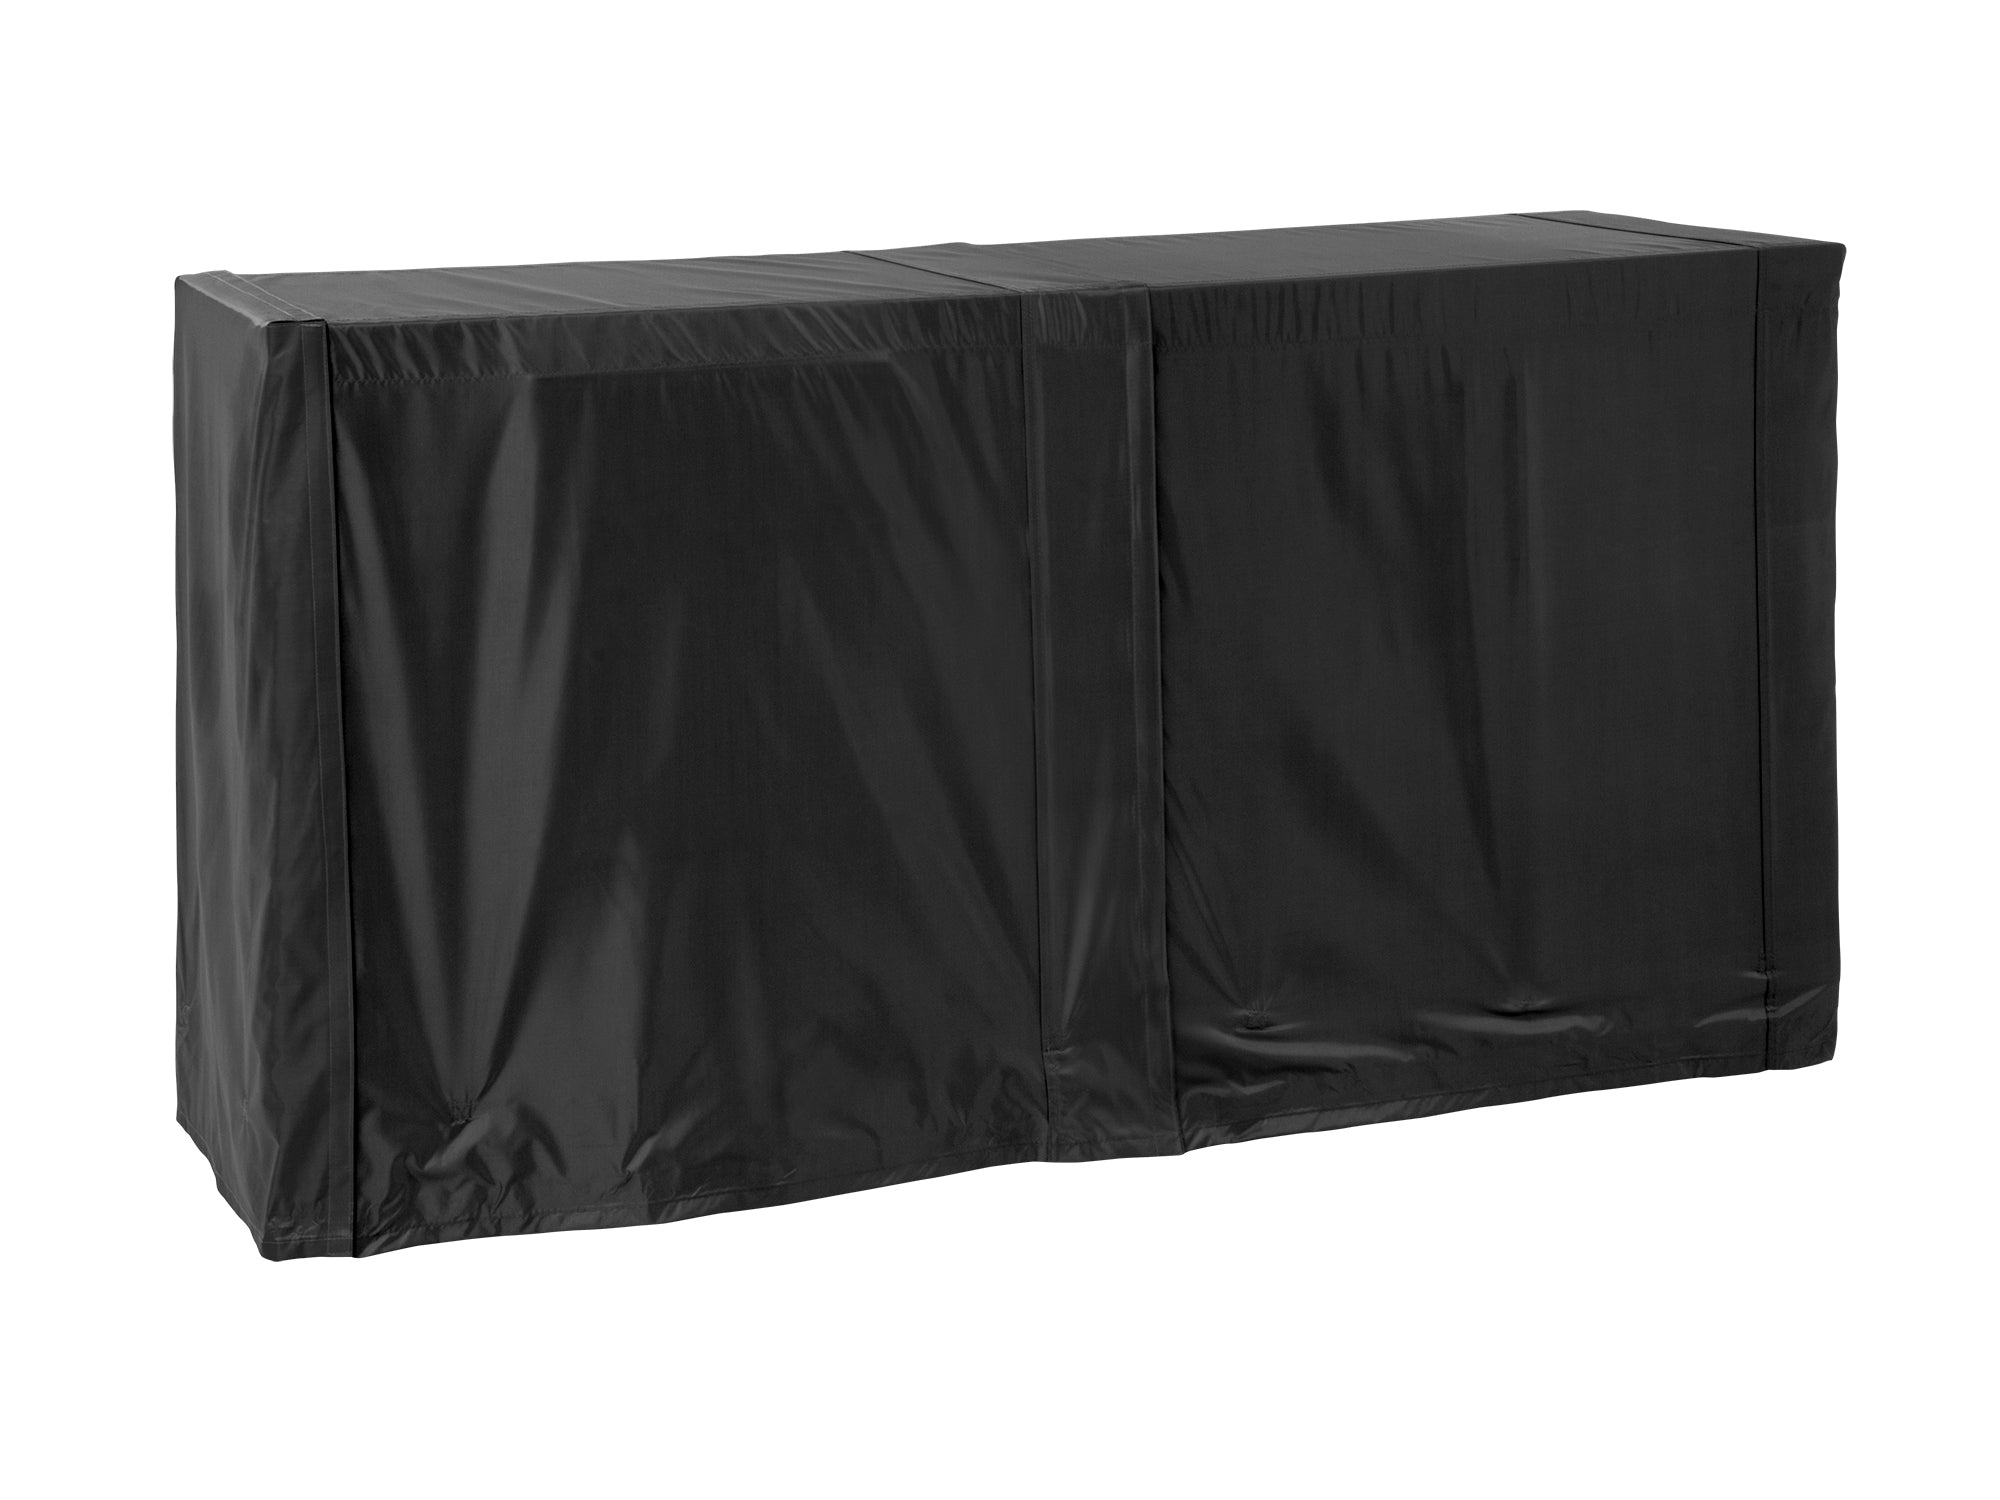 Outdoor Kitchen All-Season Cover Bundle: 64 in. Cover, Right/Left Side Panel Covers